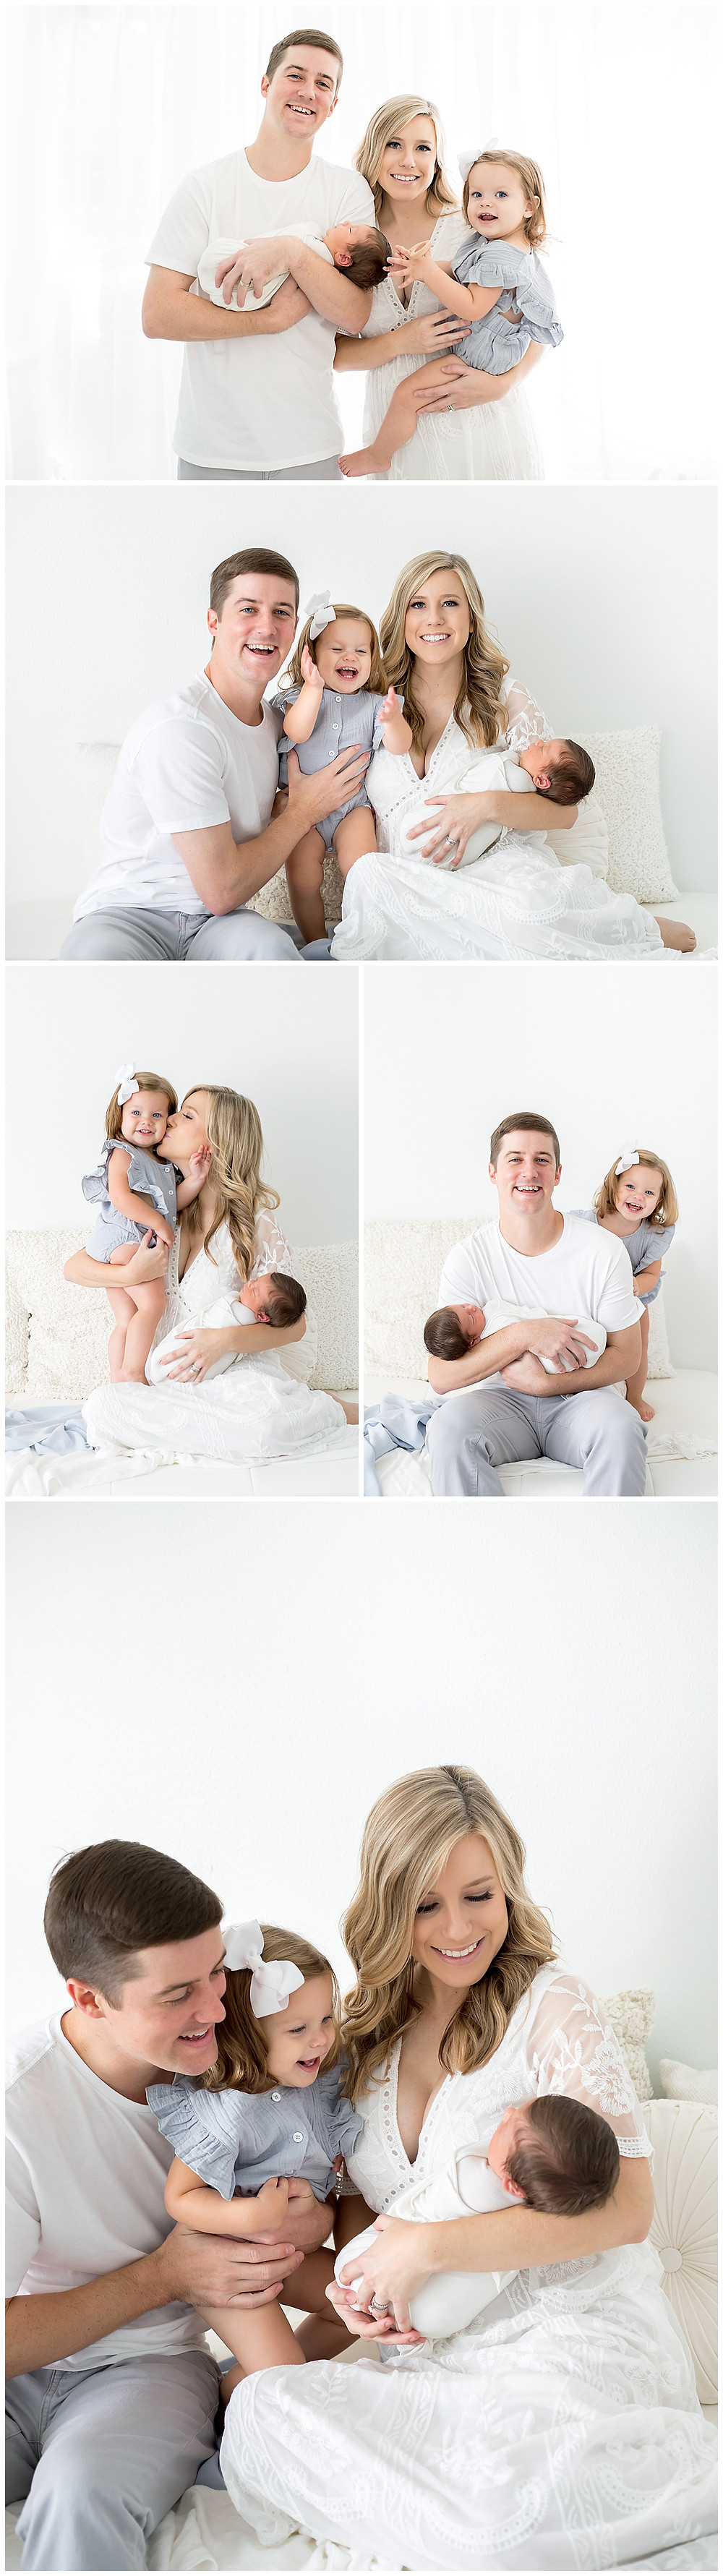 family portraits in studio with newborn baby